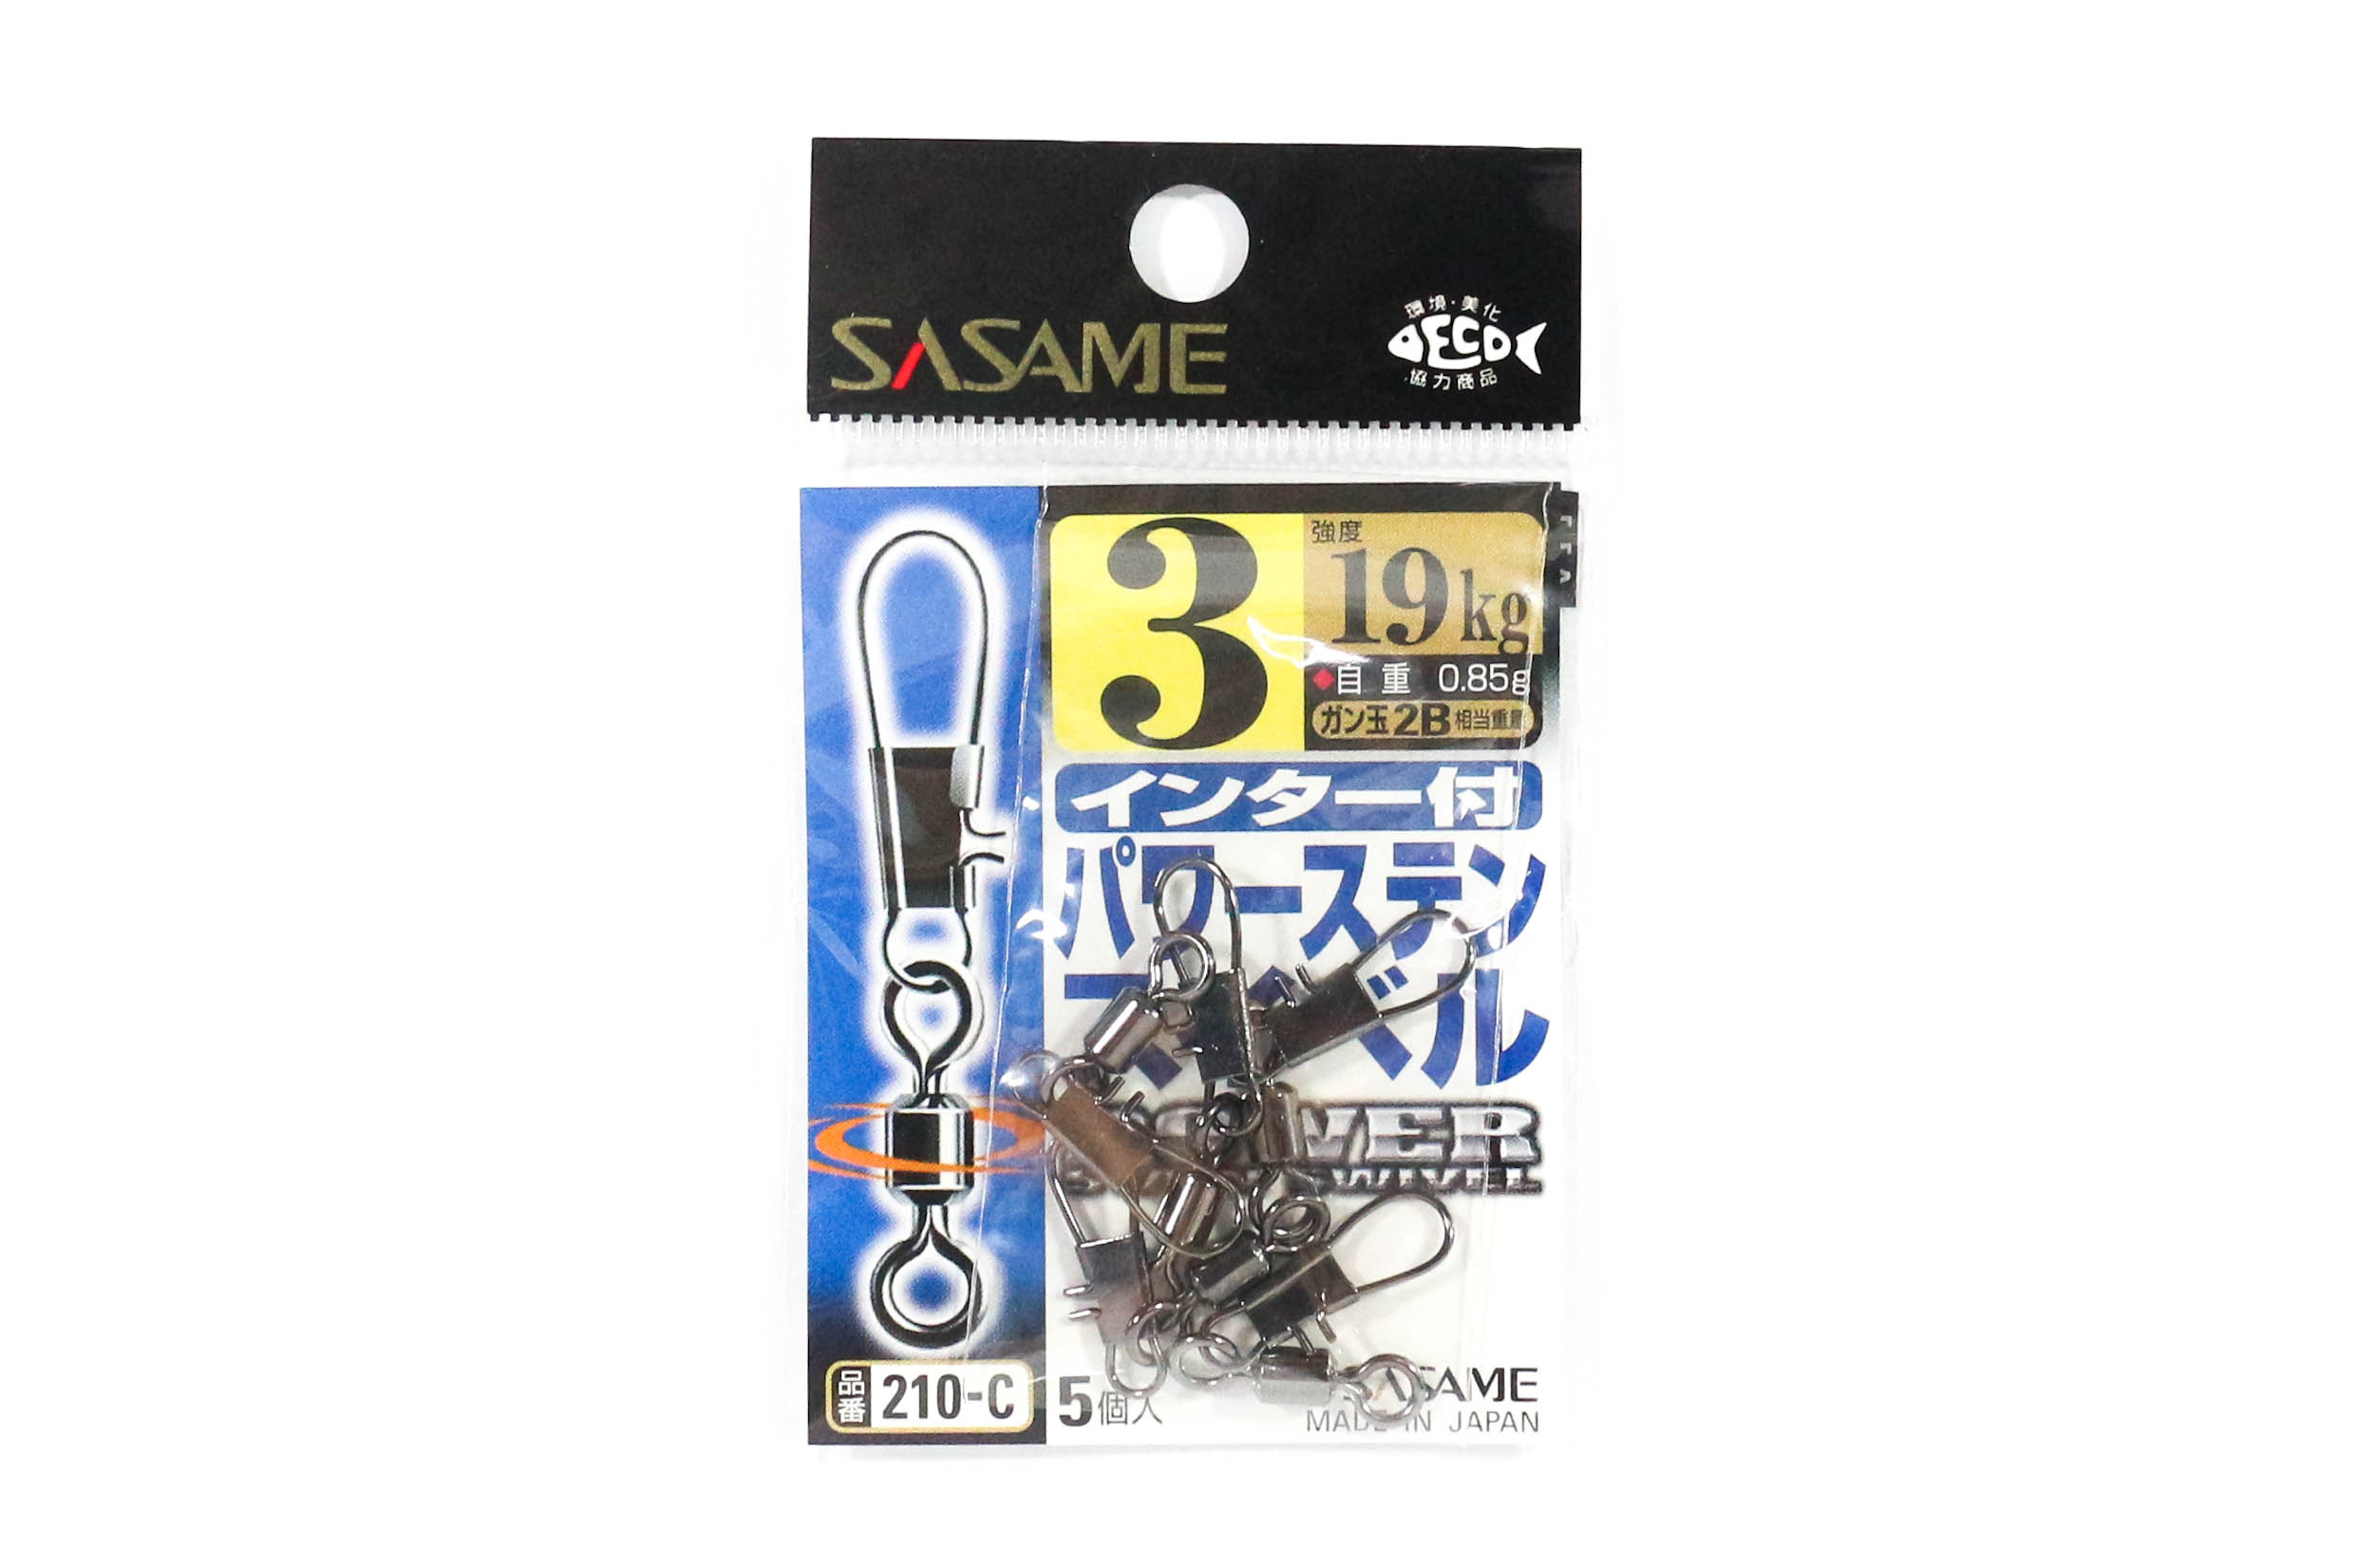 Sasame 210-C Power Stain Snap Swivel Smooth Spin Black Size 3 (1201)